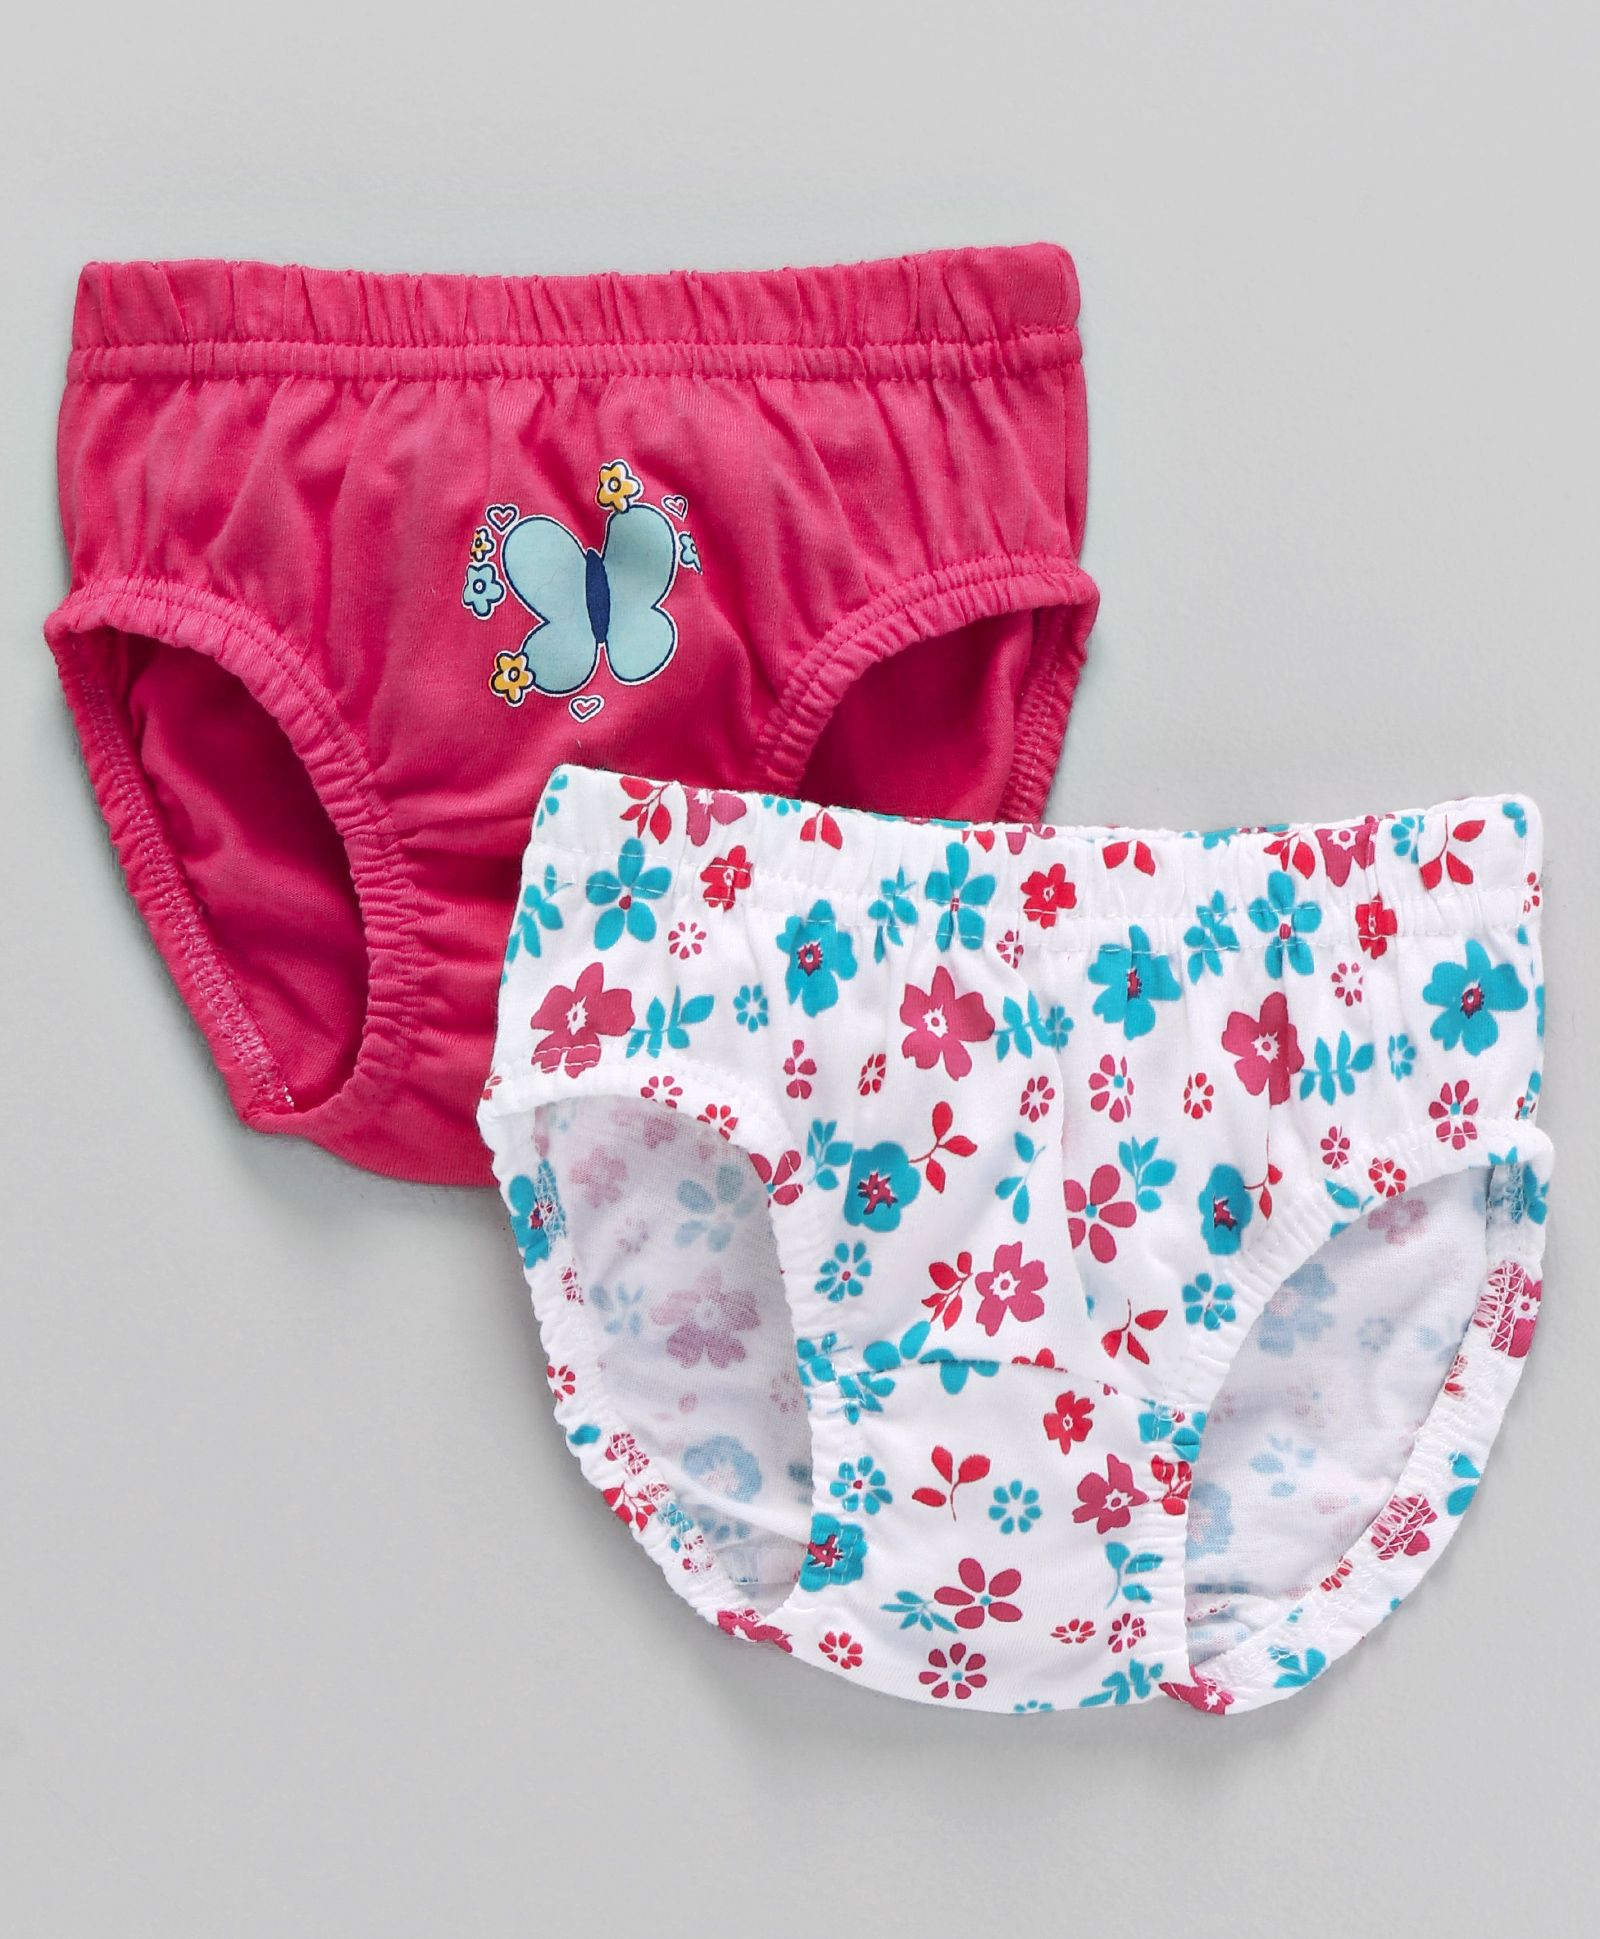 89b55f94cb8 Buy Babyhug Cotton Panties Floral Print Pack of 2 White Pink for Girls ...